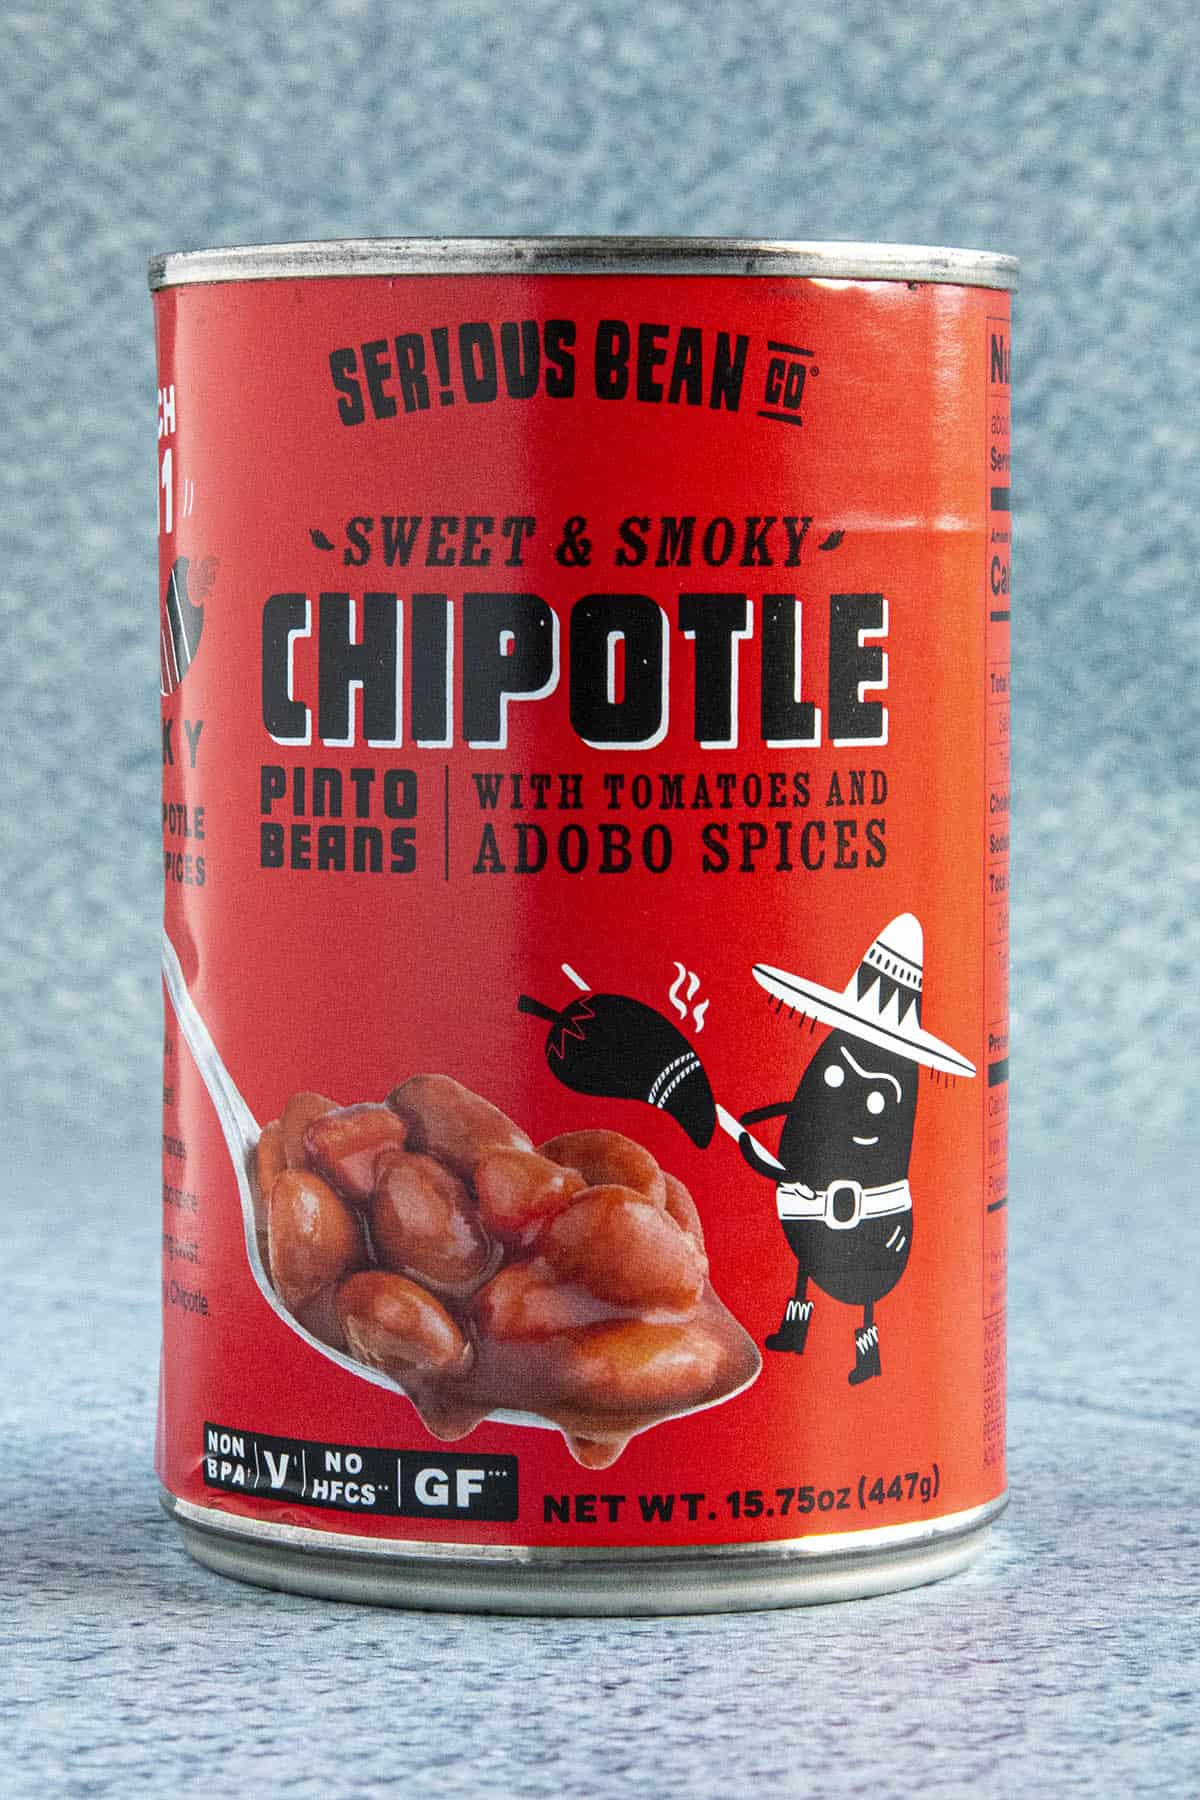 A can of Serious Bean Co. Sweet & Smoky Chipotle Pinto Beans with Tomatoes and Adobo Spices